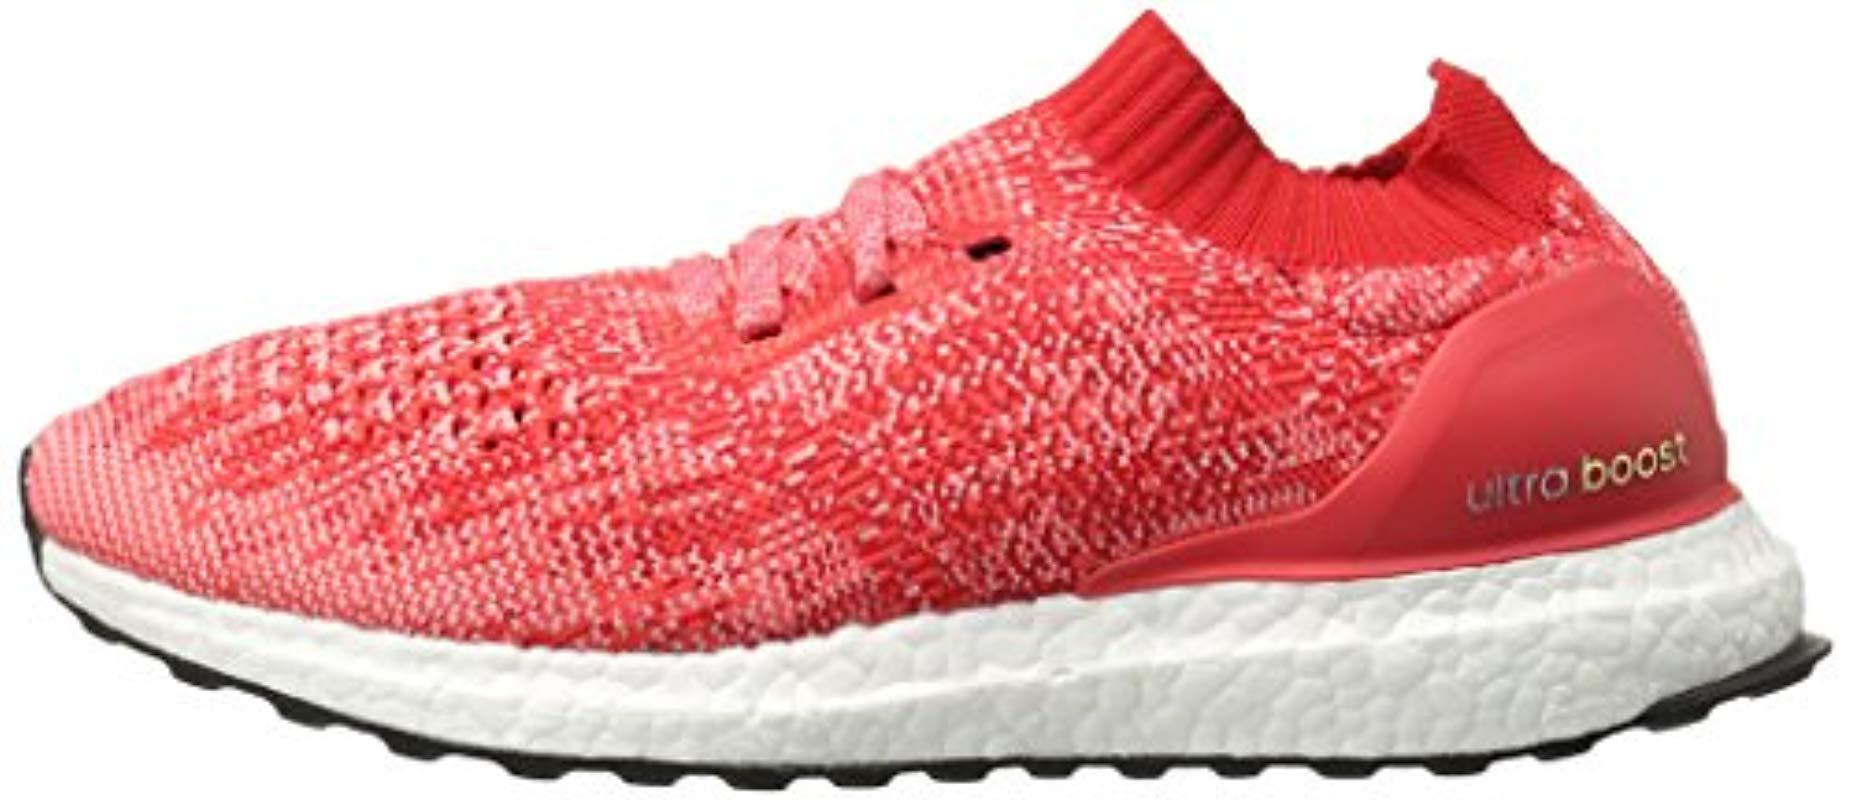 adidas Women's Ultraboost Uncaged W Running Shoe BlackSolid GreyMetallic Gold 9 M US